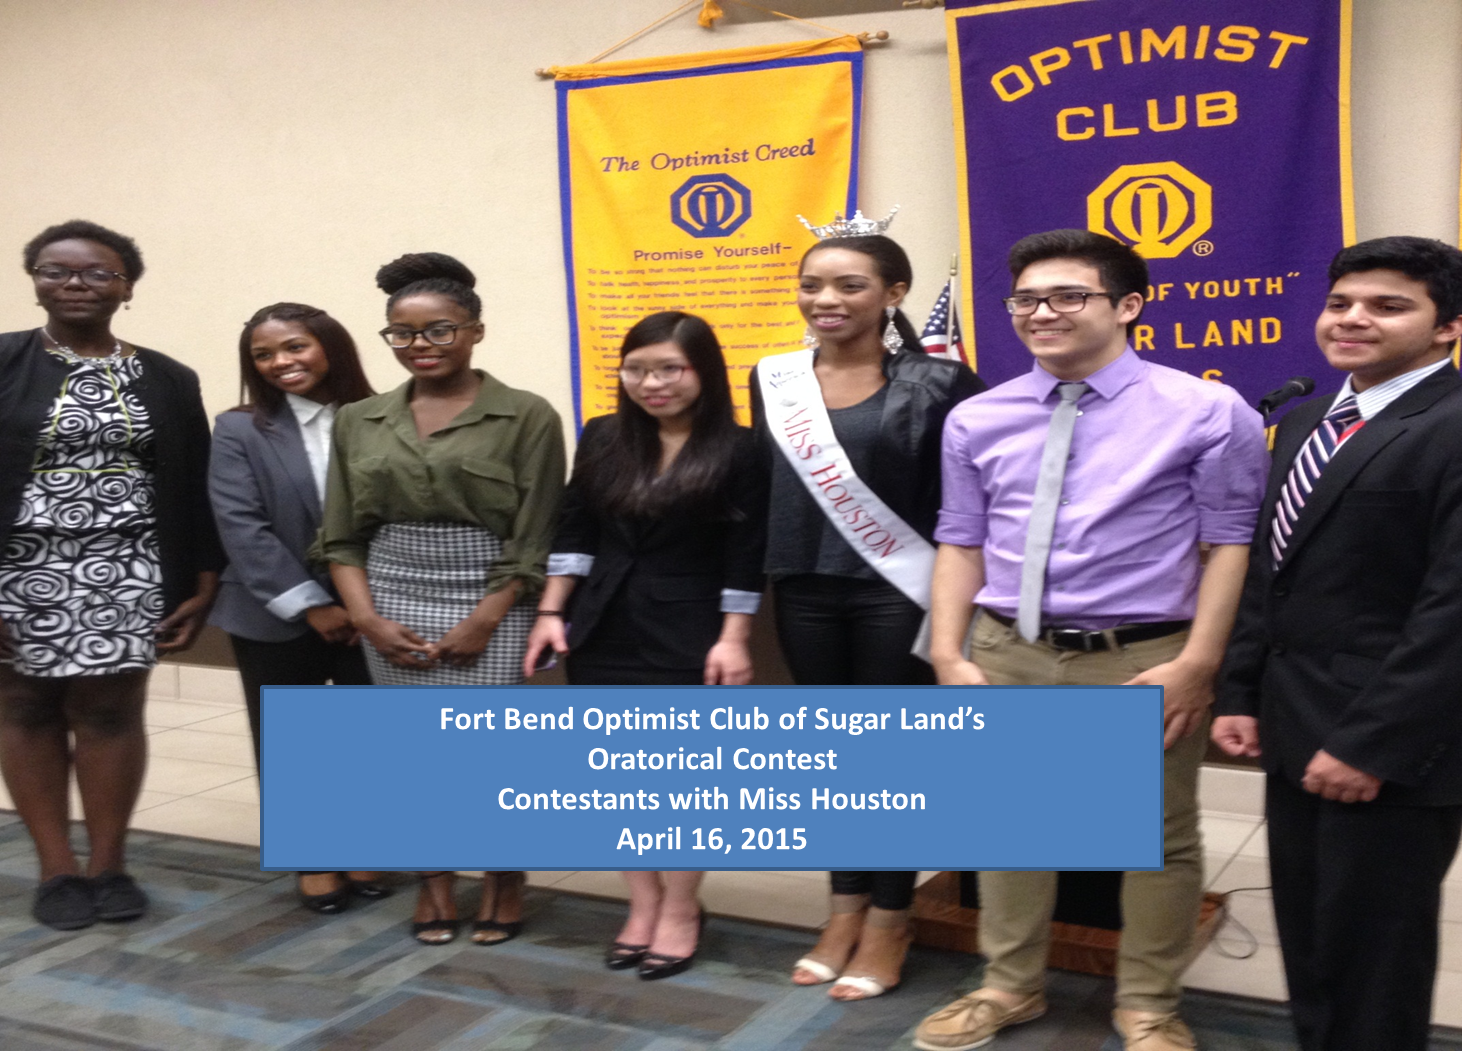 programs fort bend optimist club sugar land miss optimist club oratorical 2015